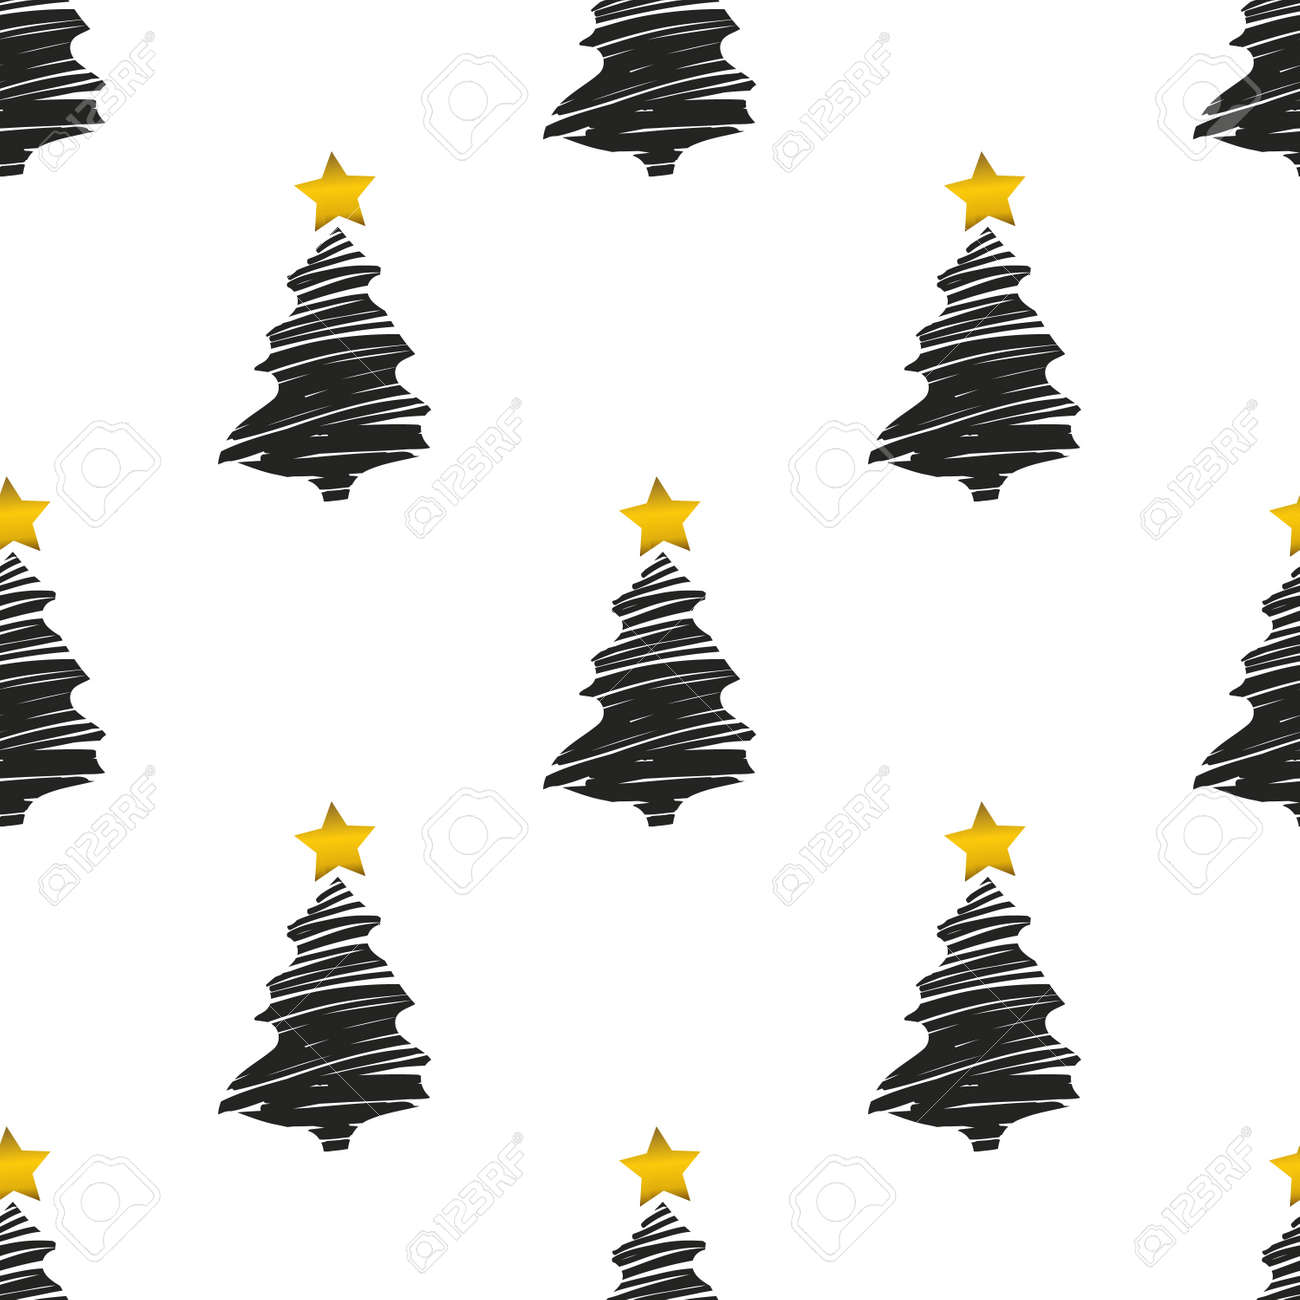 Foil Christmas Tree.Abstract Background With Christmas Tree Pattern With Gold Star